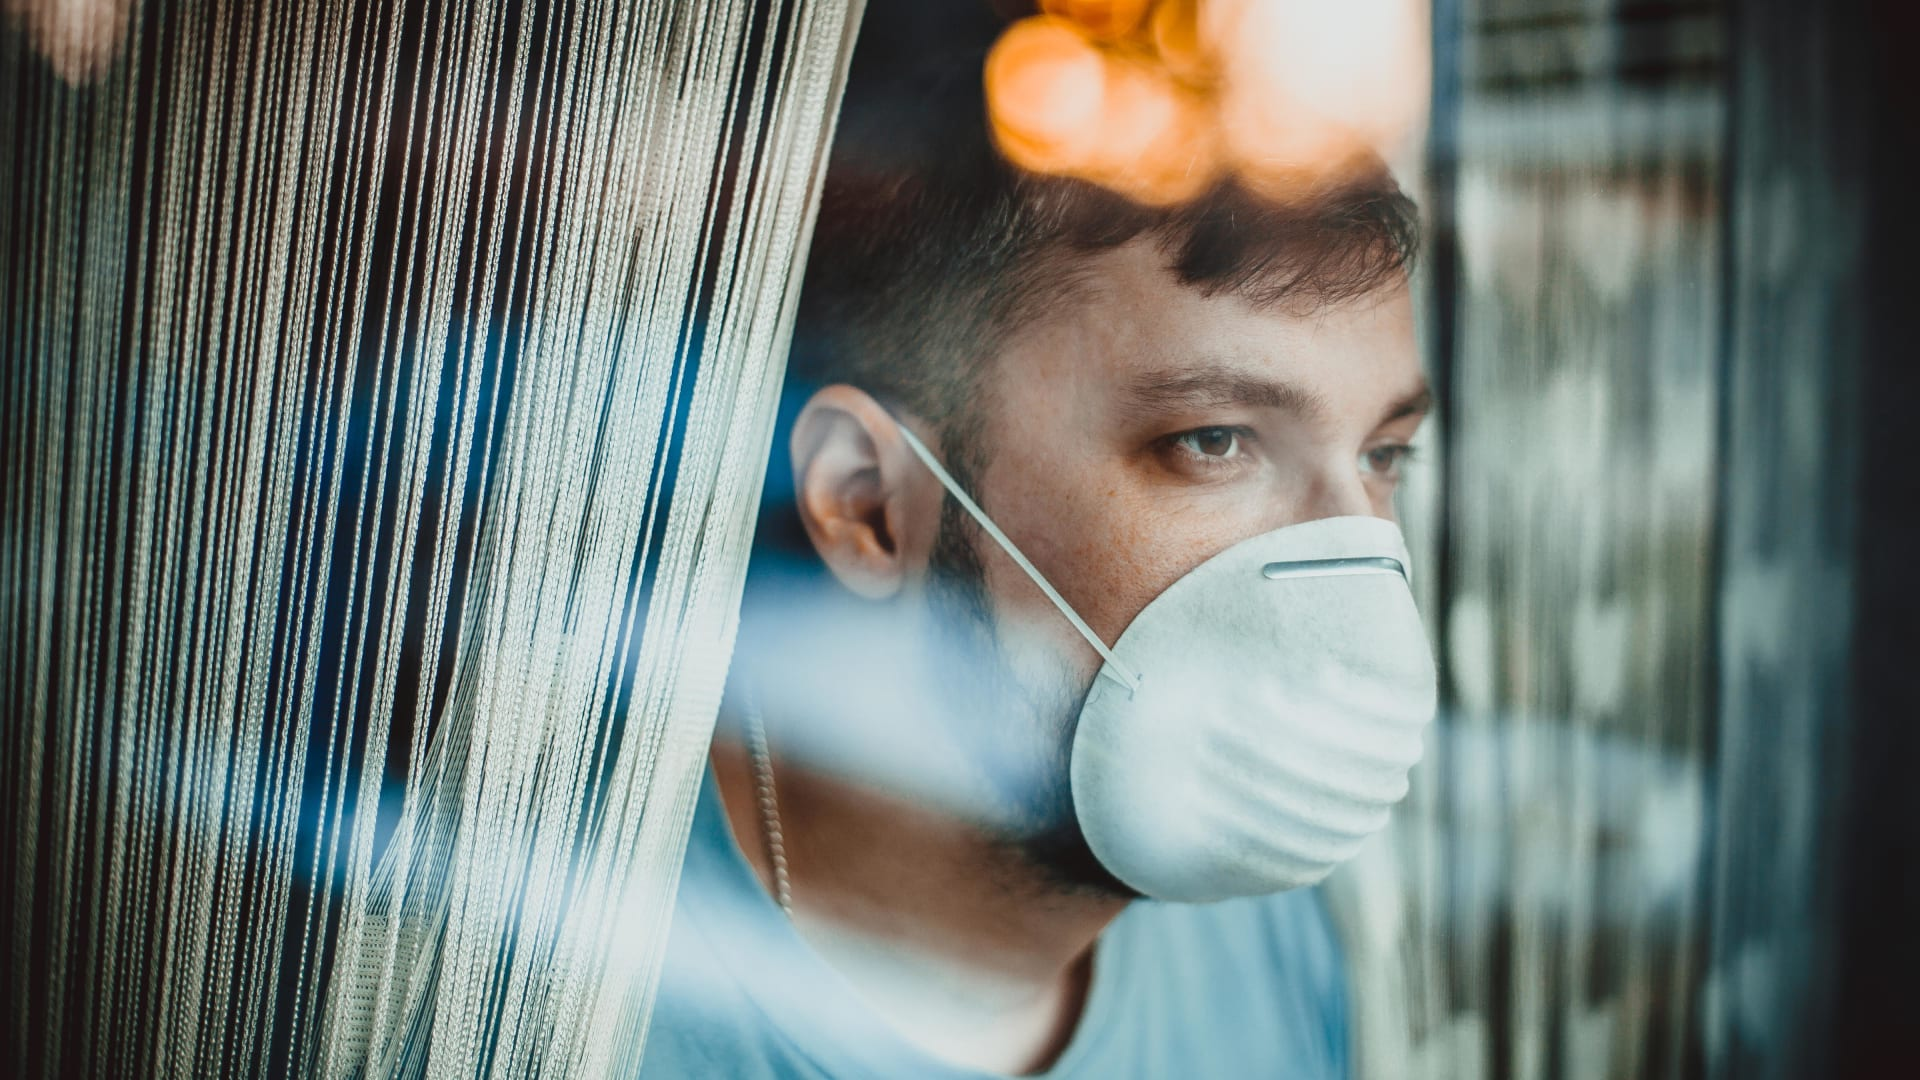 'Languishing,' the Trendy Buzzword for Feeling the Pandemic Blahs, Is Real. But It's Definitely Not New